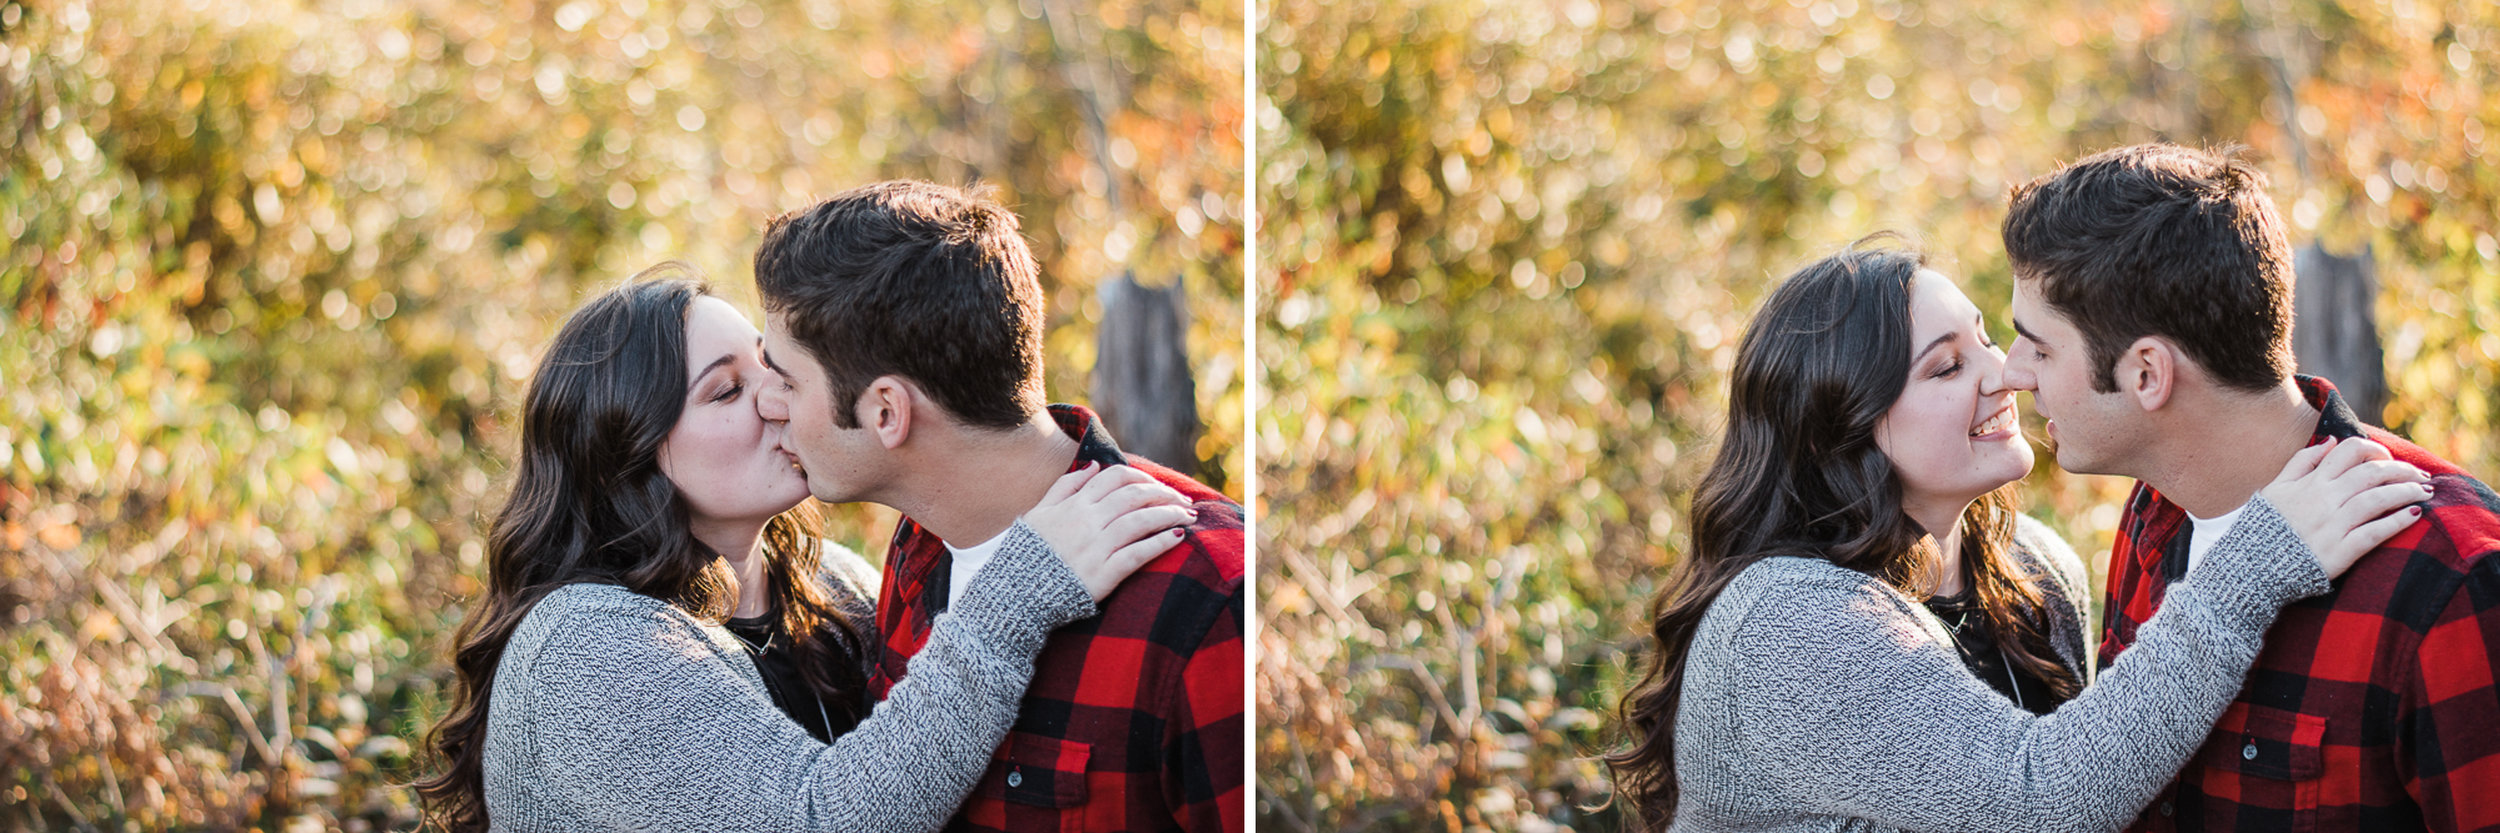 Mountain Engagement Portraits, Fall Engagement Photos, Engaged, 17.jpg